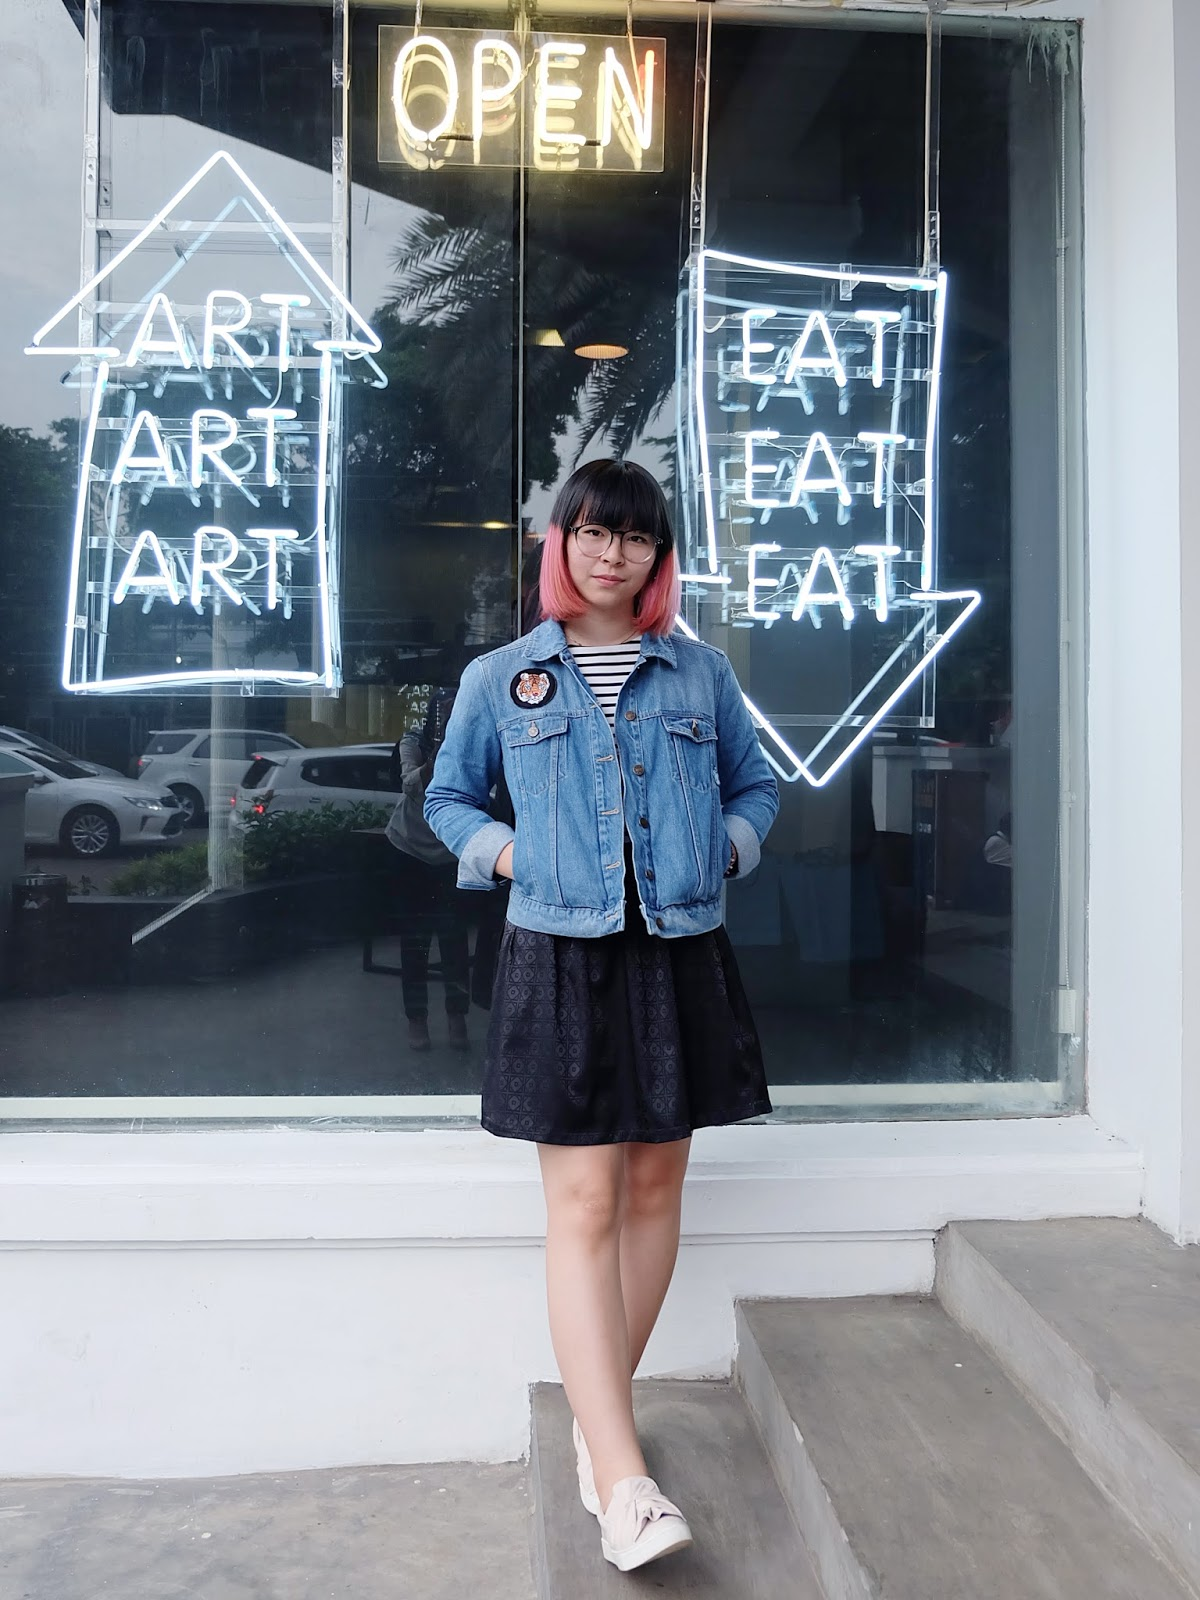 art, eat, stripes, and denim outfit | bigdreamerblog.com